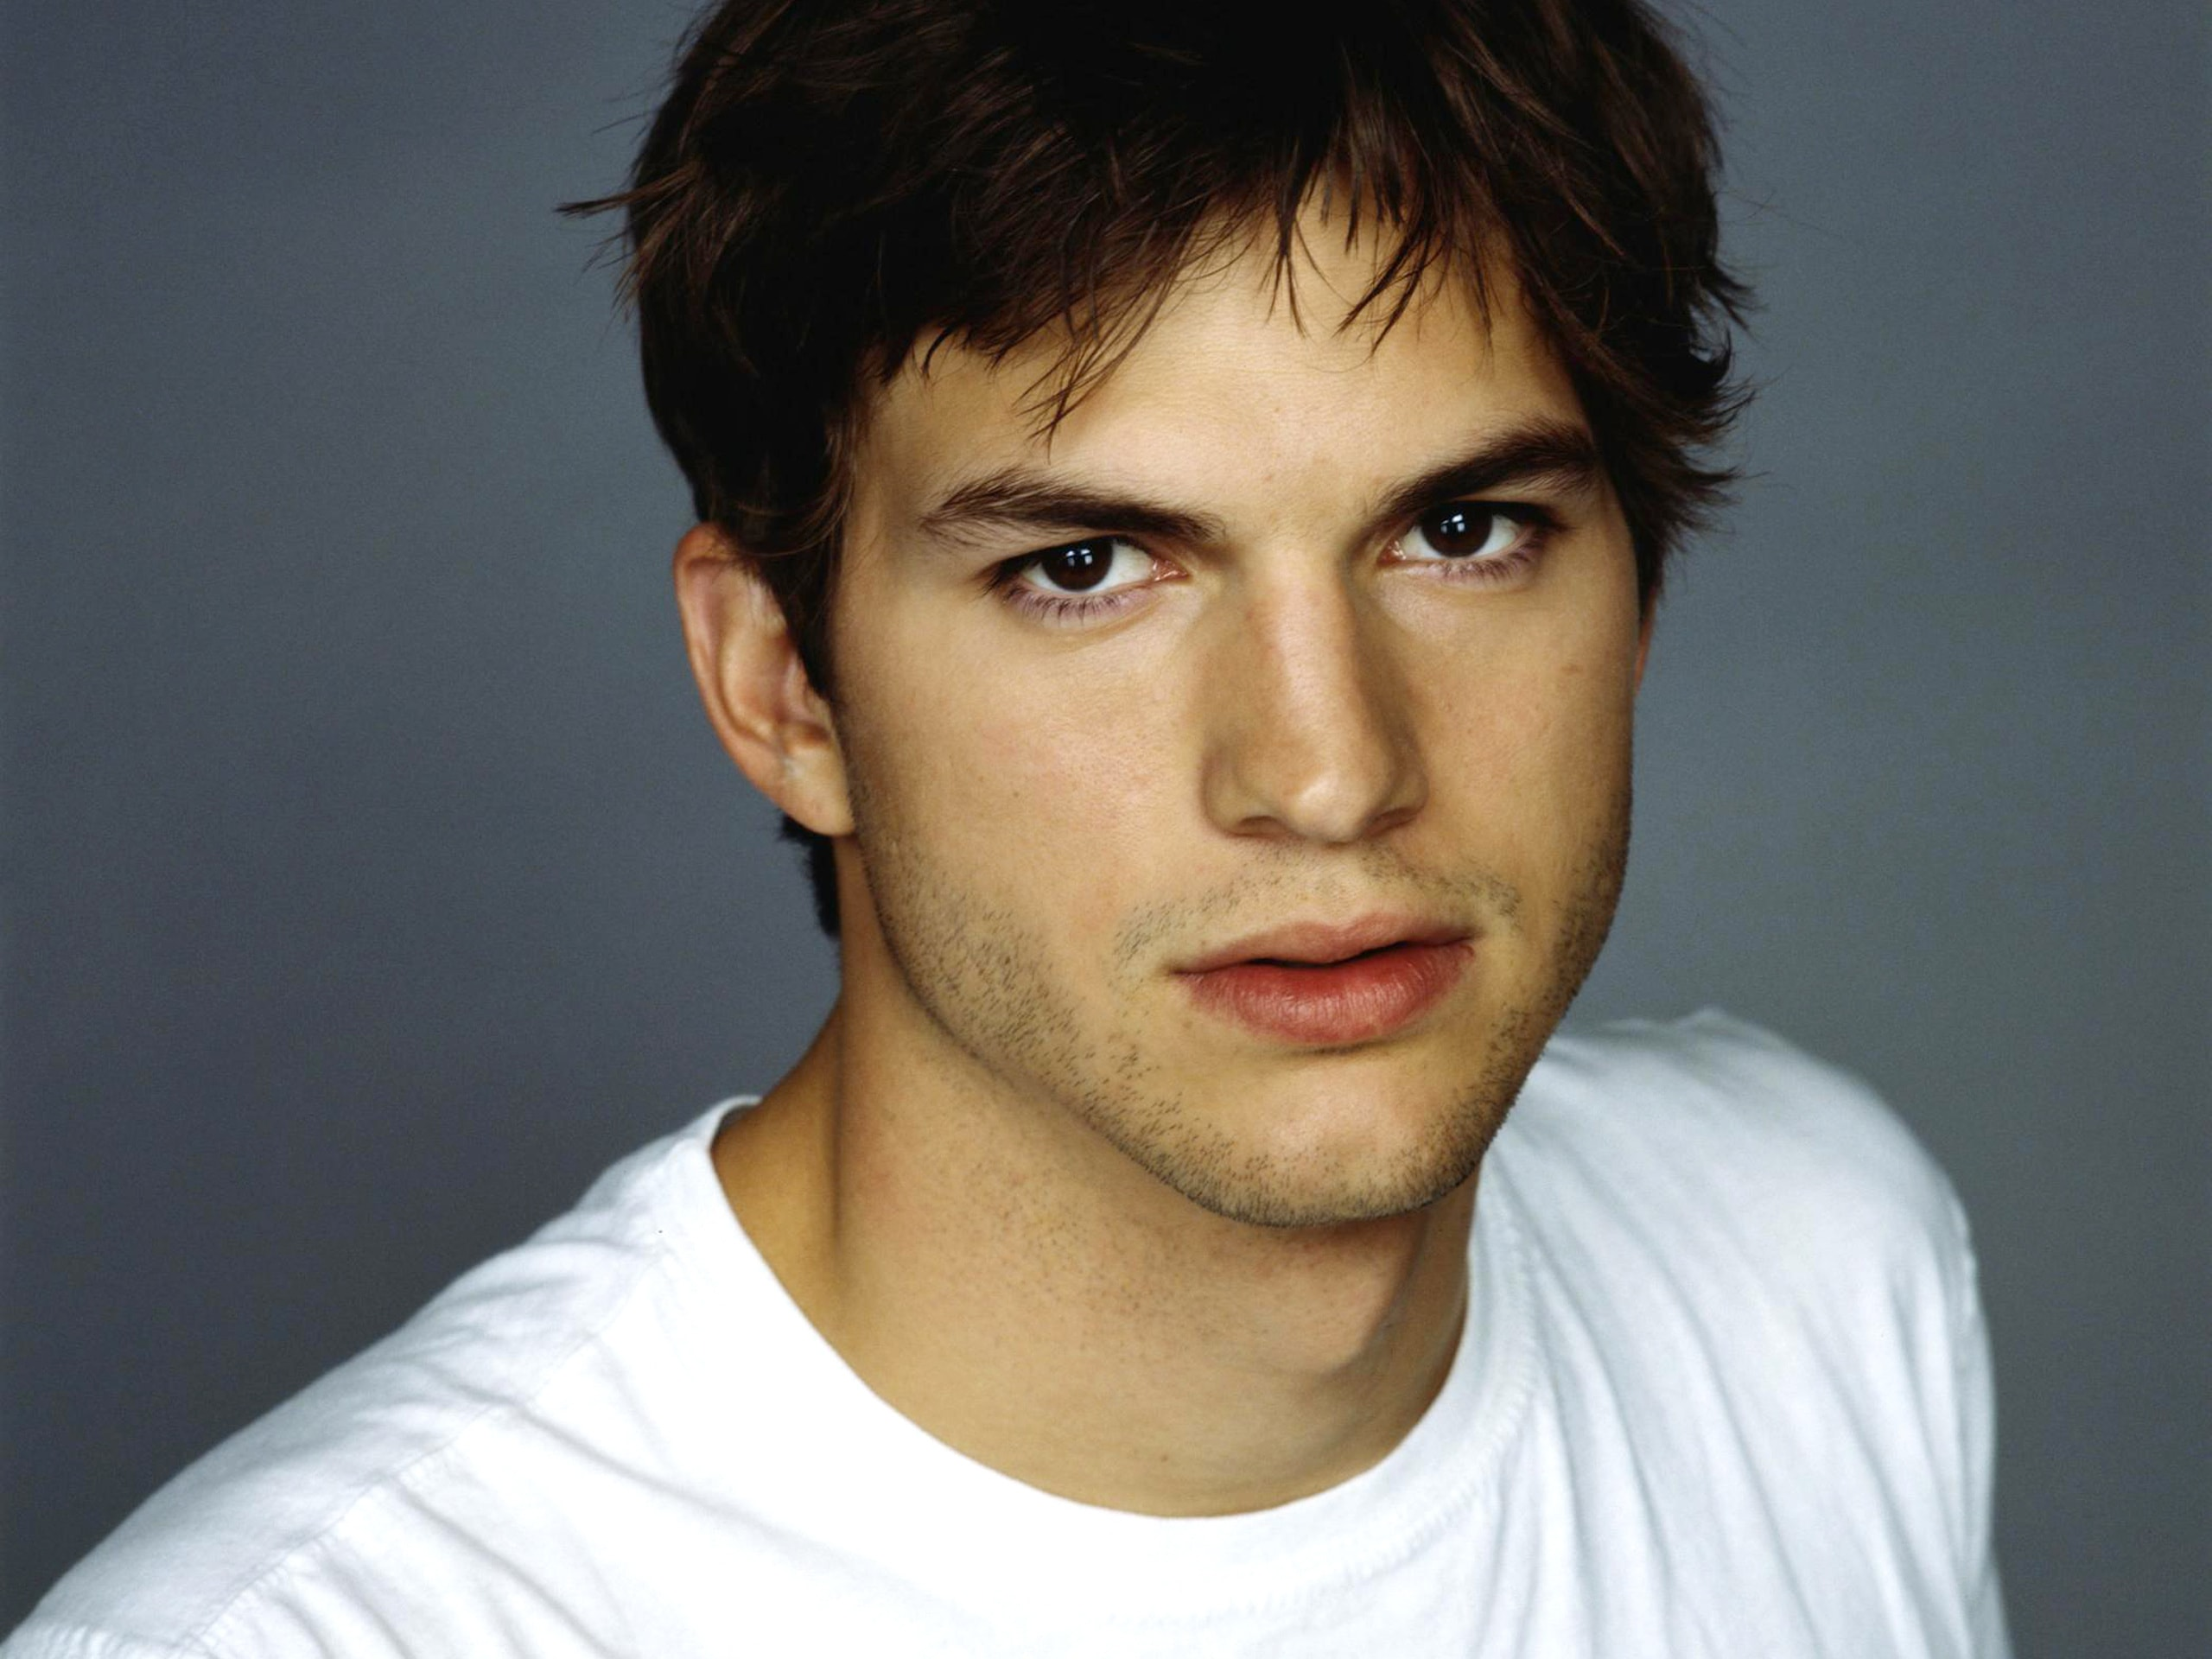 Ashton Kutcher Wallpapers hd